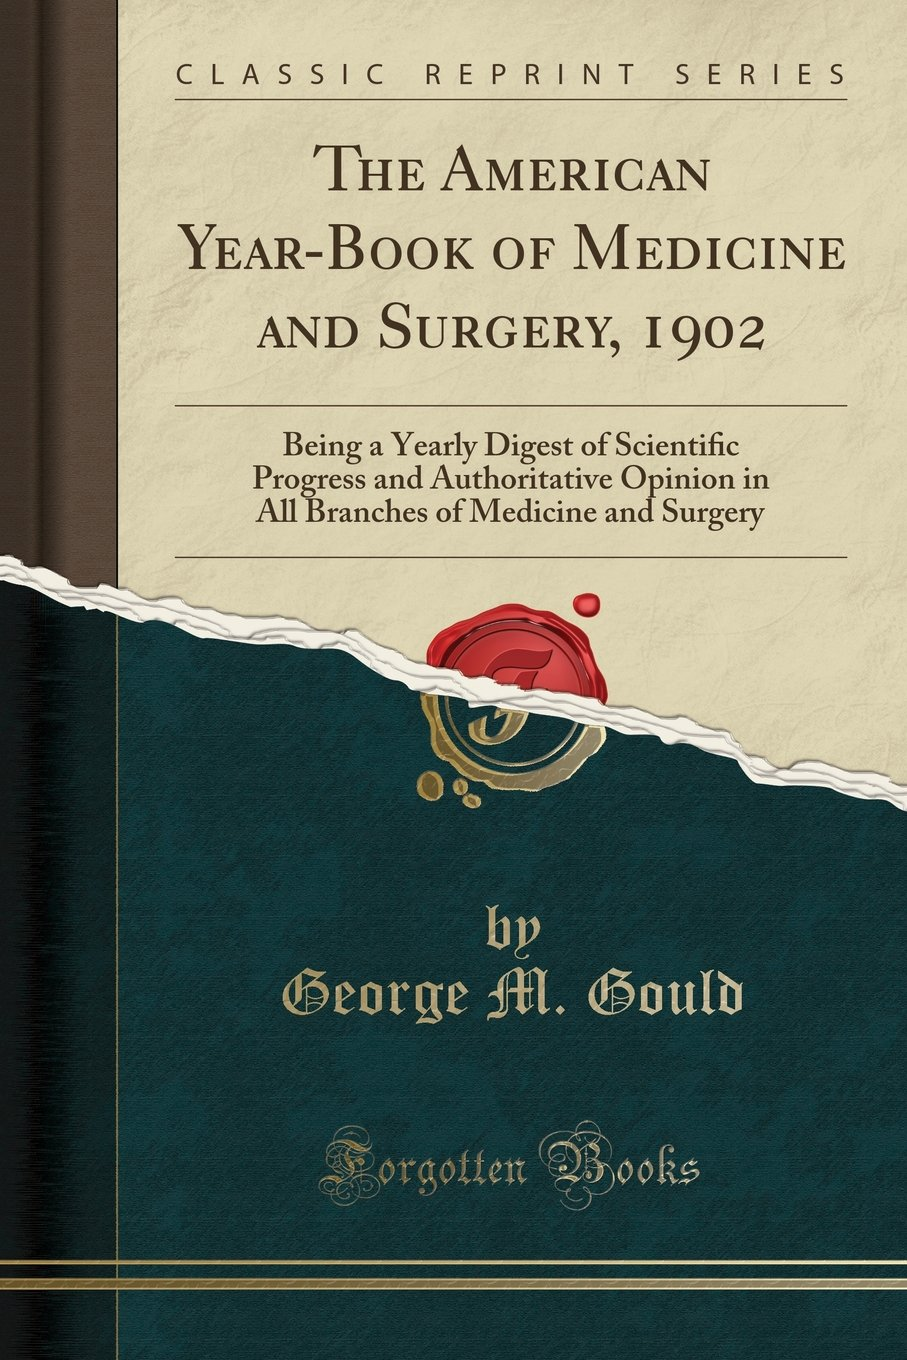 Read Online The American Year-Book of Medicine and Surgery, 1902: Being a Yearly Digest of Scientific Progress and Authoritative Opinion in All Branches of Medicine and Surgery (Classic Reprint) pdf